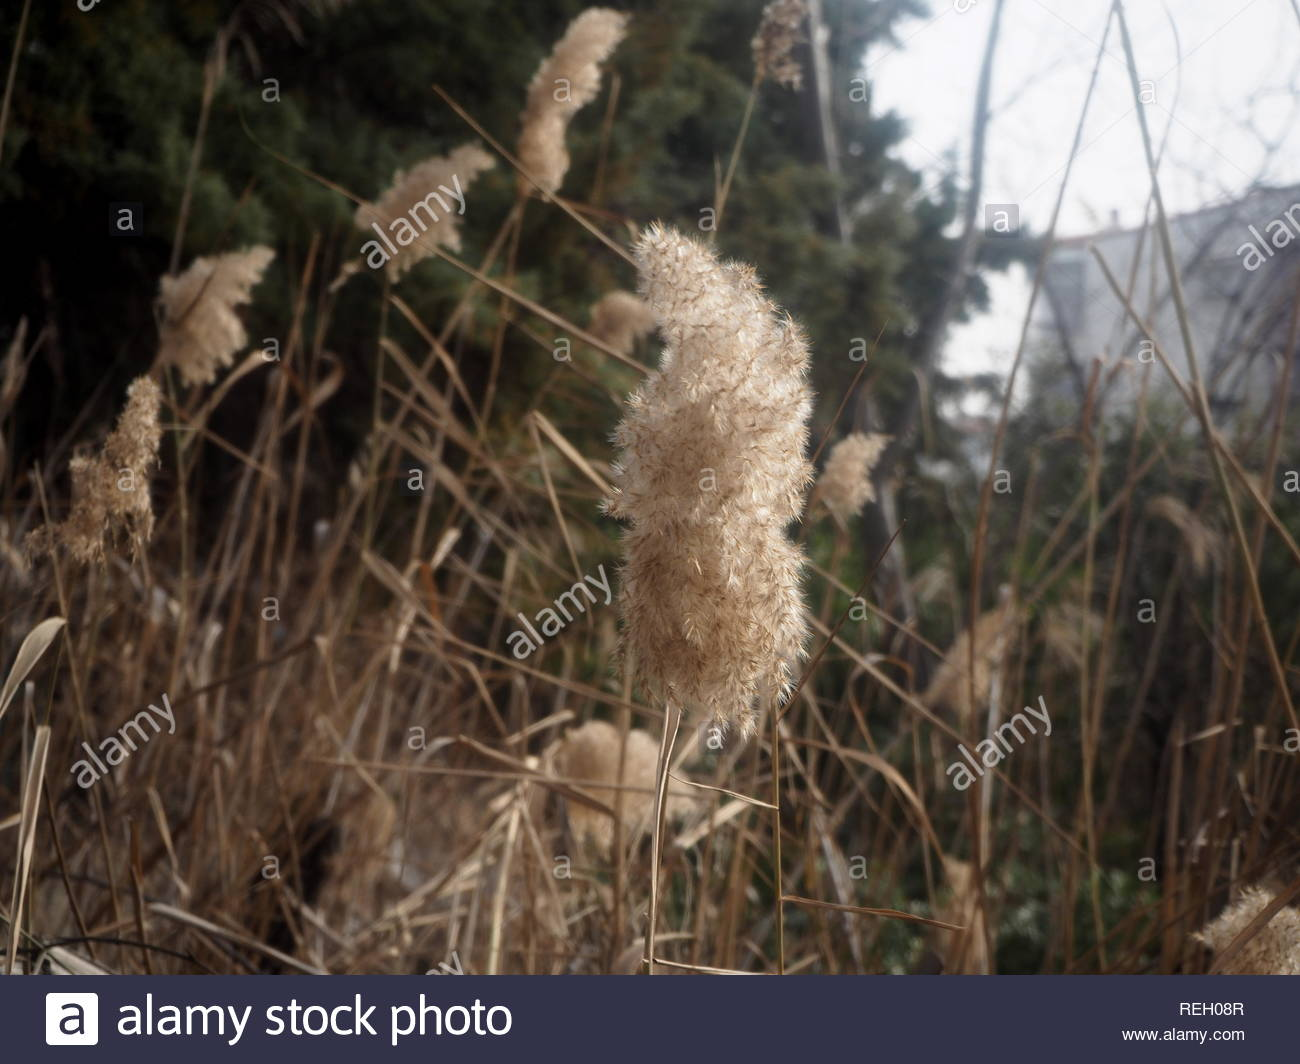 Common Reeds Upper part - Phragmites australis - Stock Image